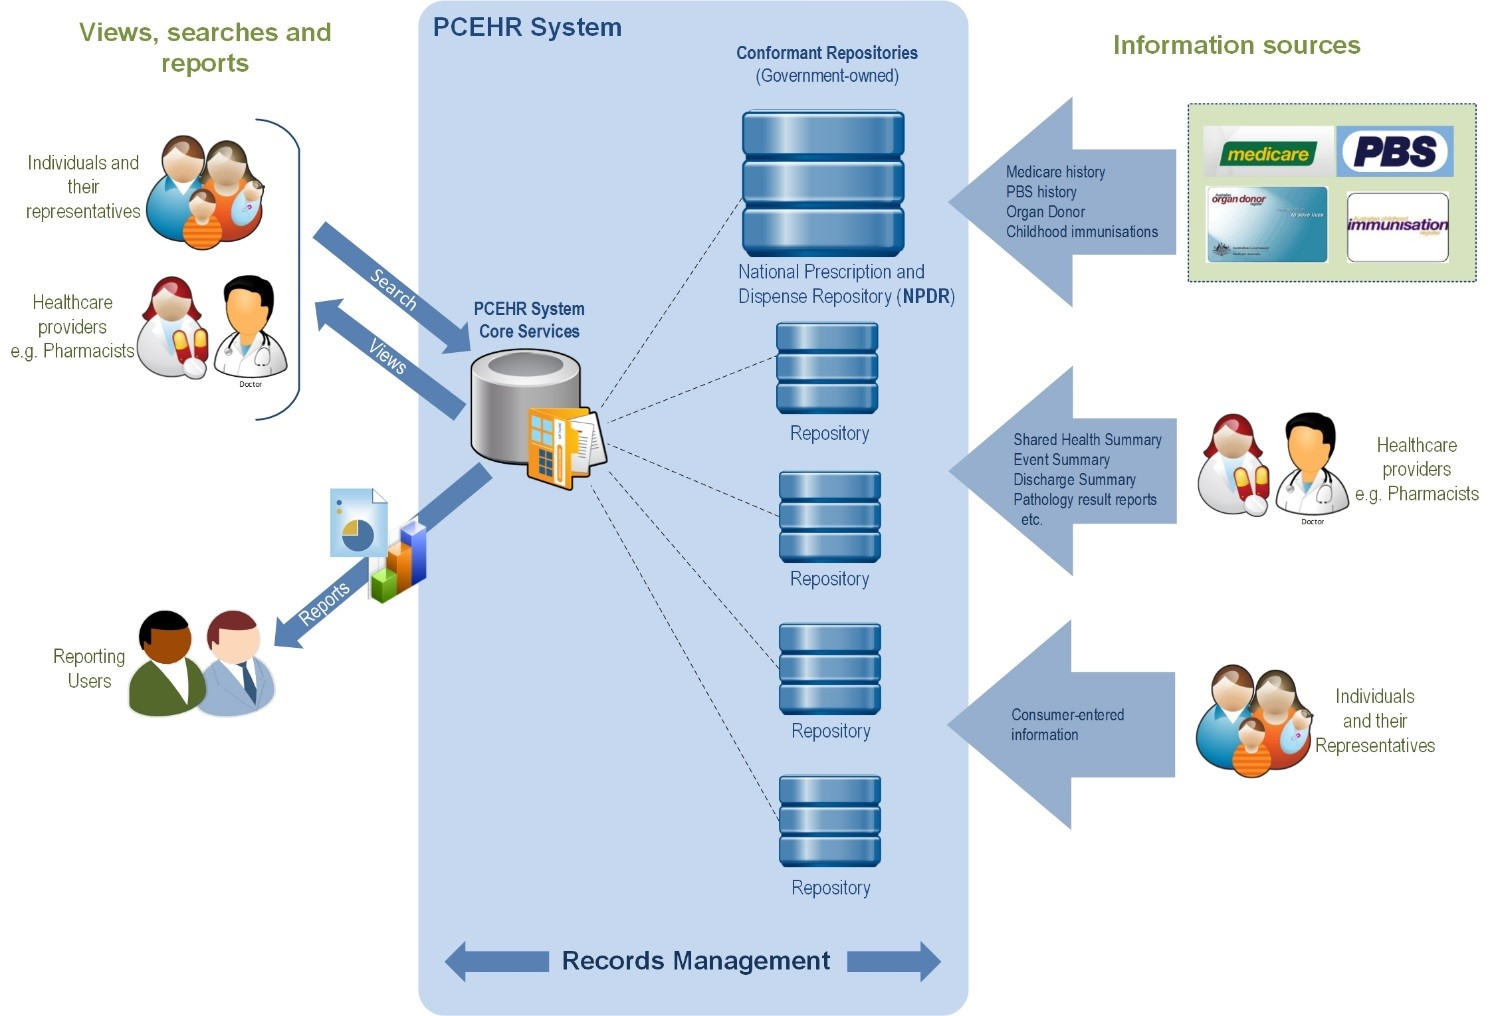 Views, searches and reports >< PCEHR system < Information sources